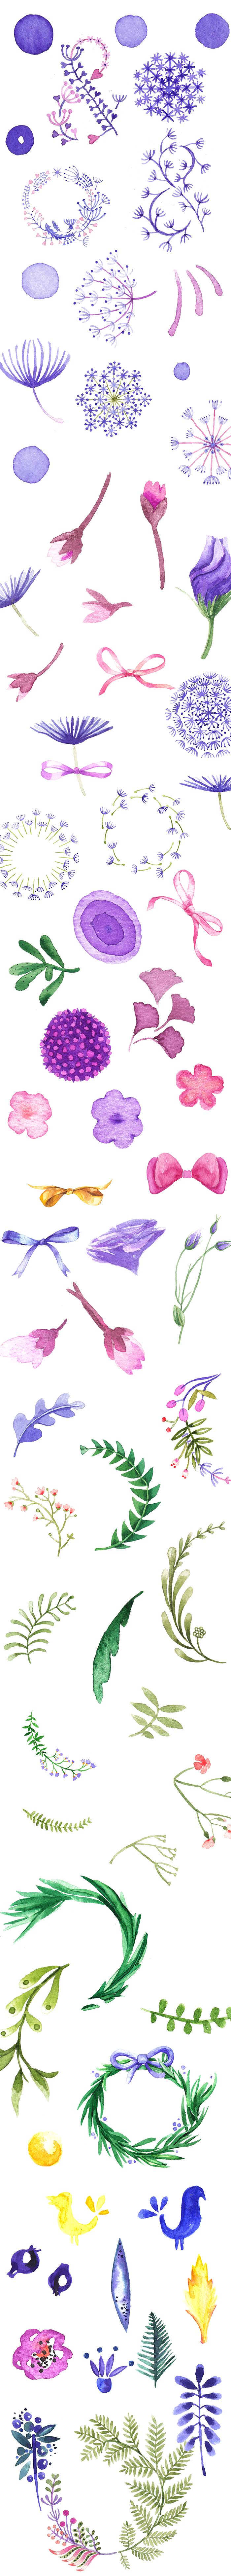 Beautiful #Watercolor Collection with 540+ Elements | #spring #flowers